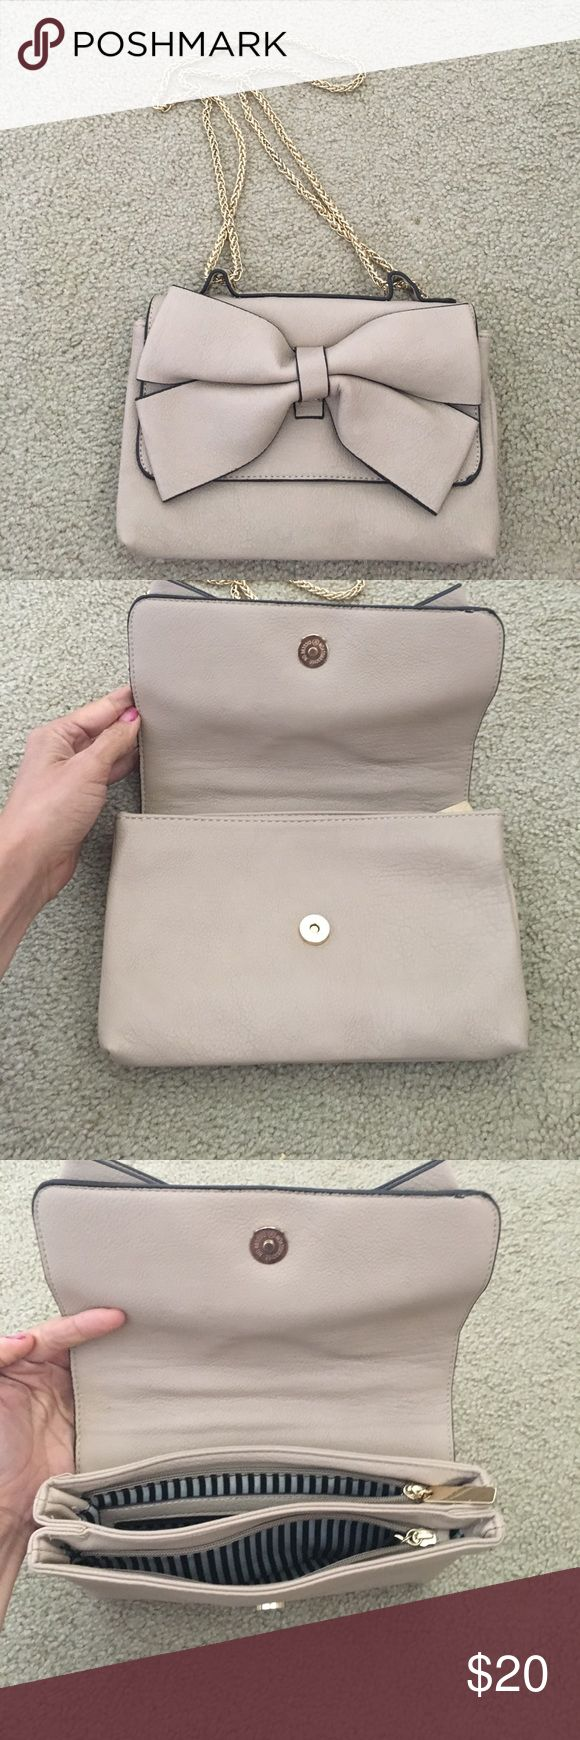 Adorable bow nude purse Gently used. Small scuff on back, noted in pictures Charming Charlie Bags Shoulder Bags